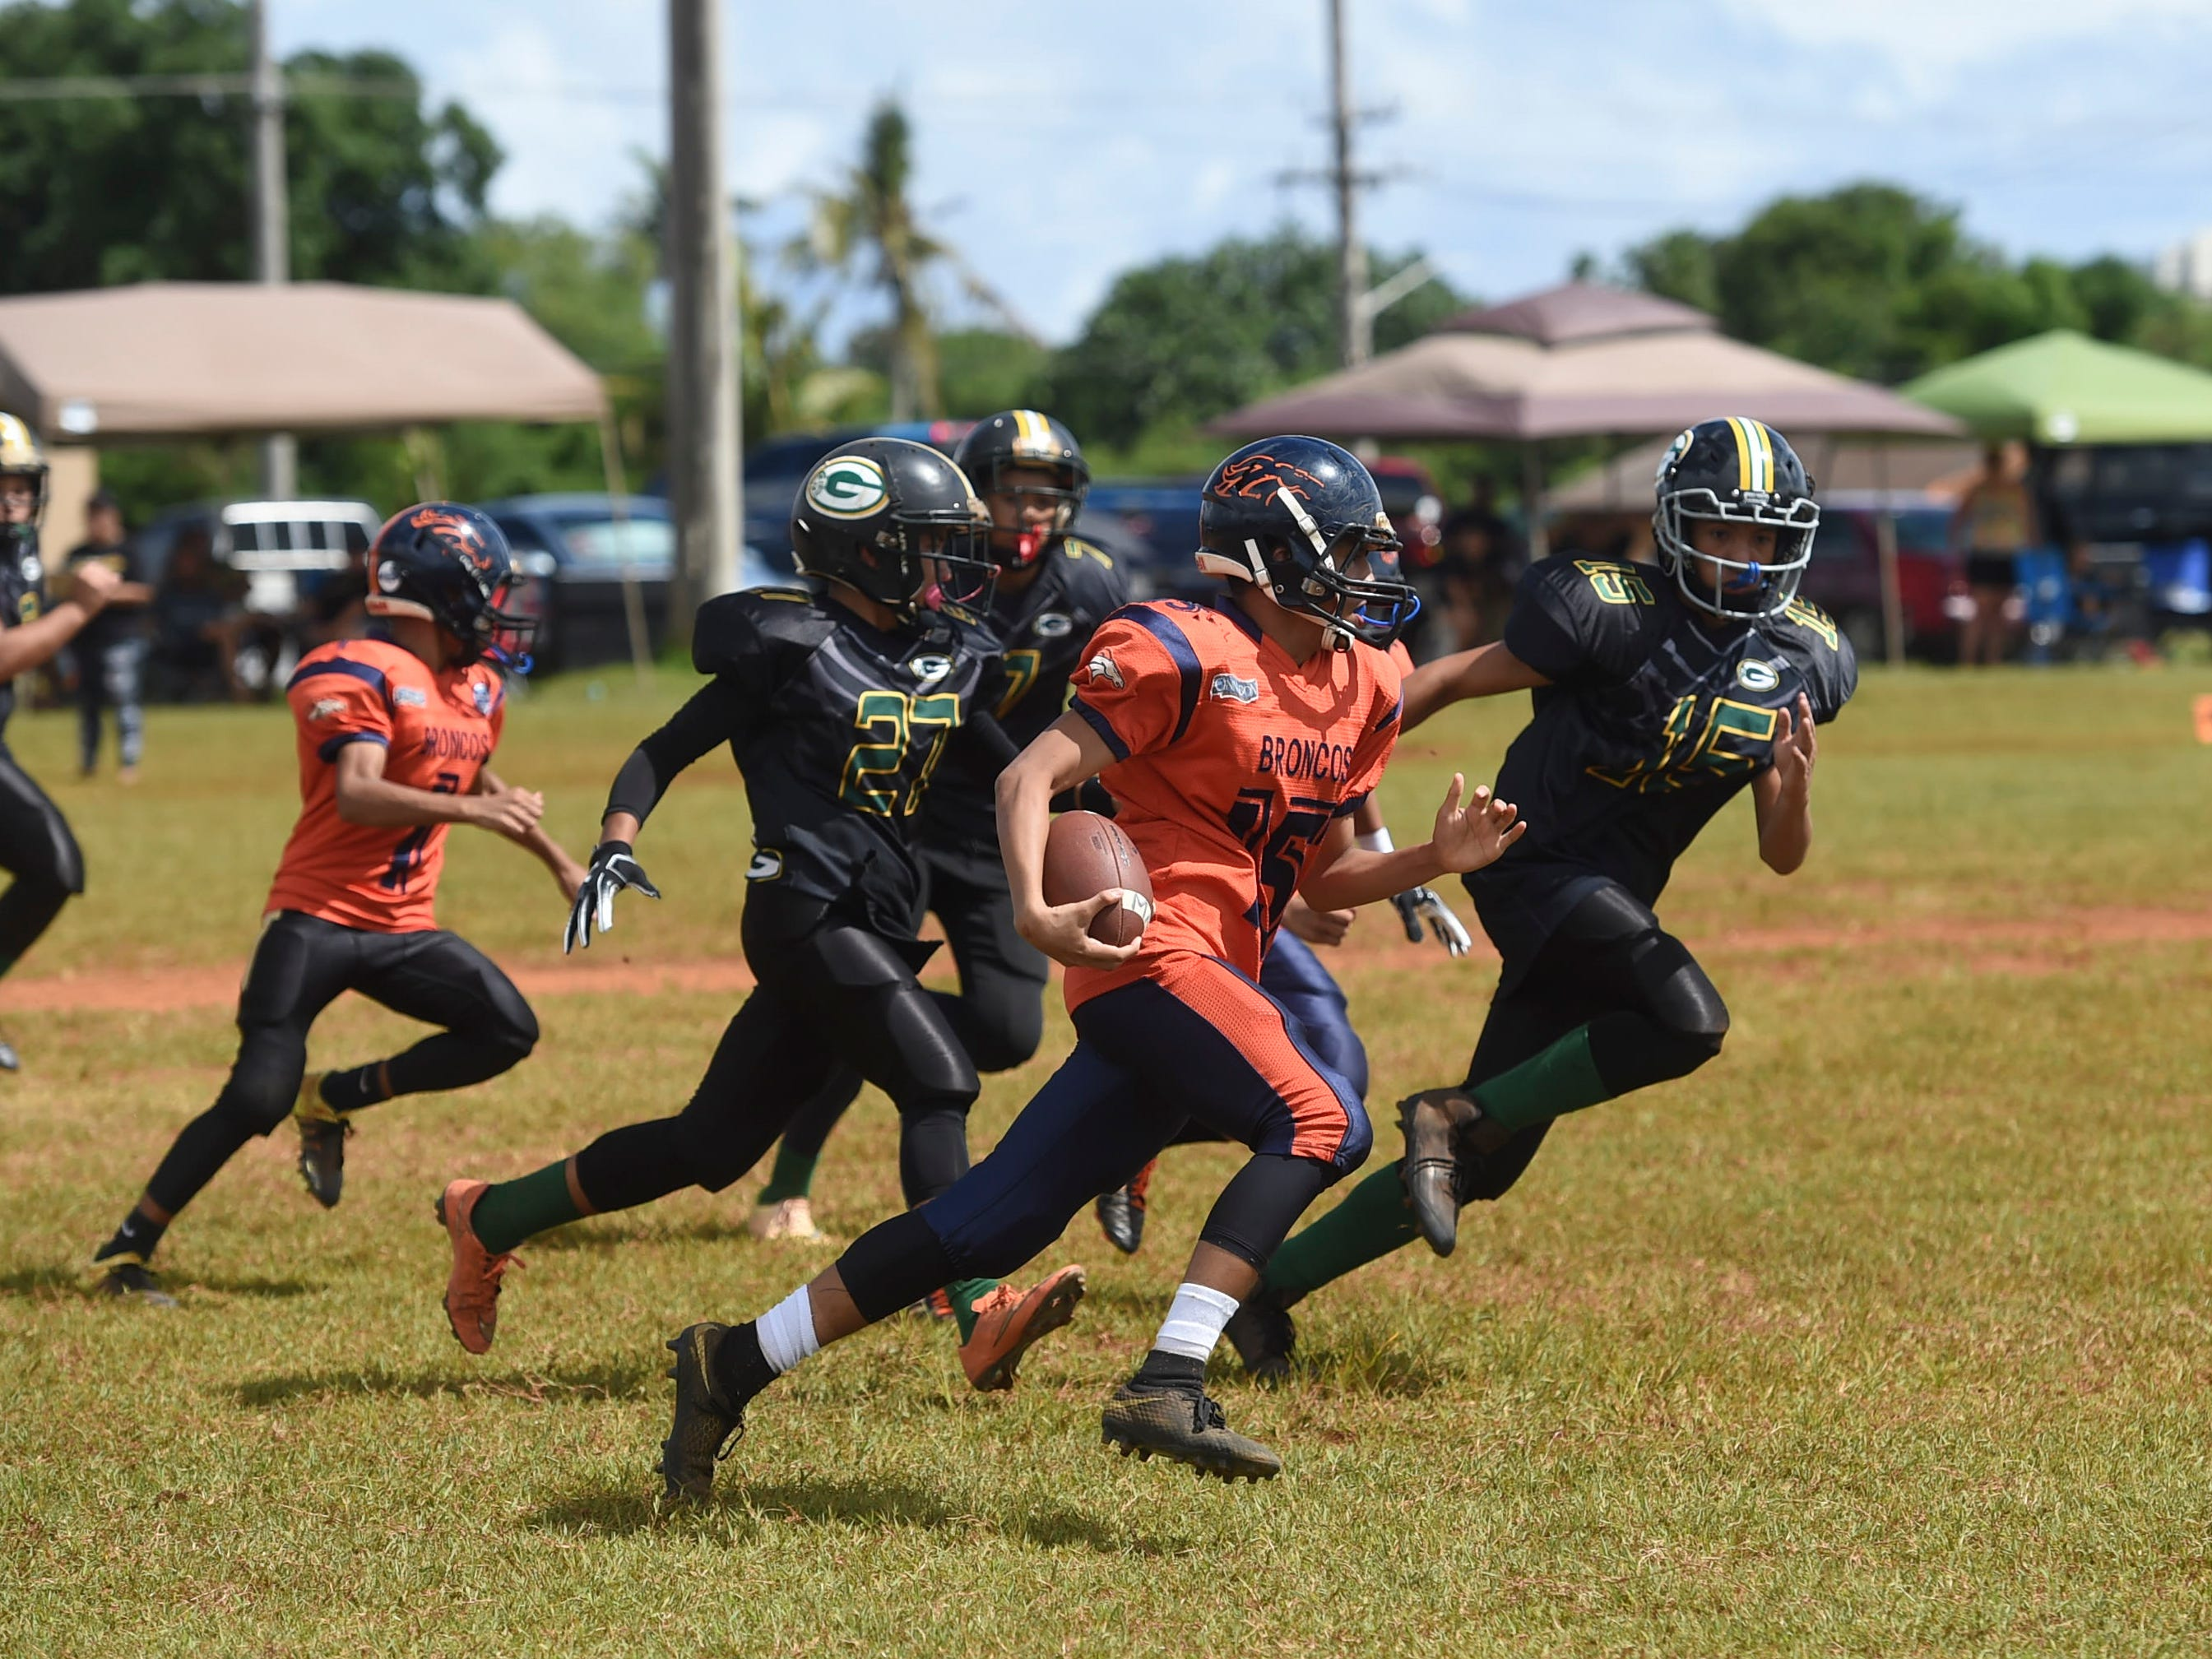 Cinnabon Island Broncos player Ipo Aguon Indalecio (15) runs the ball against the Guam Packers during their Guam National Youth Football Federation Matua division game at the Mikkel Tan I. Vy Field in Tiyan on Sept. 2, 2018.